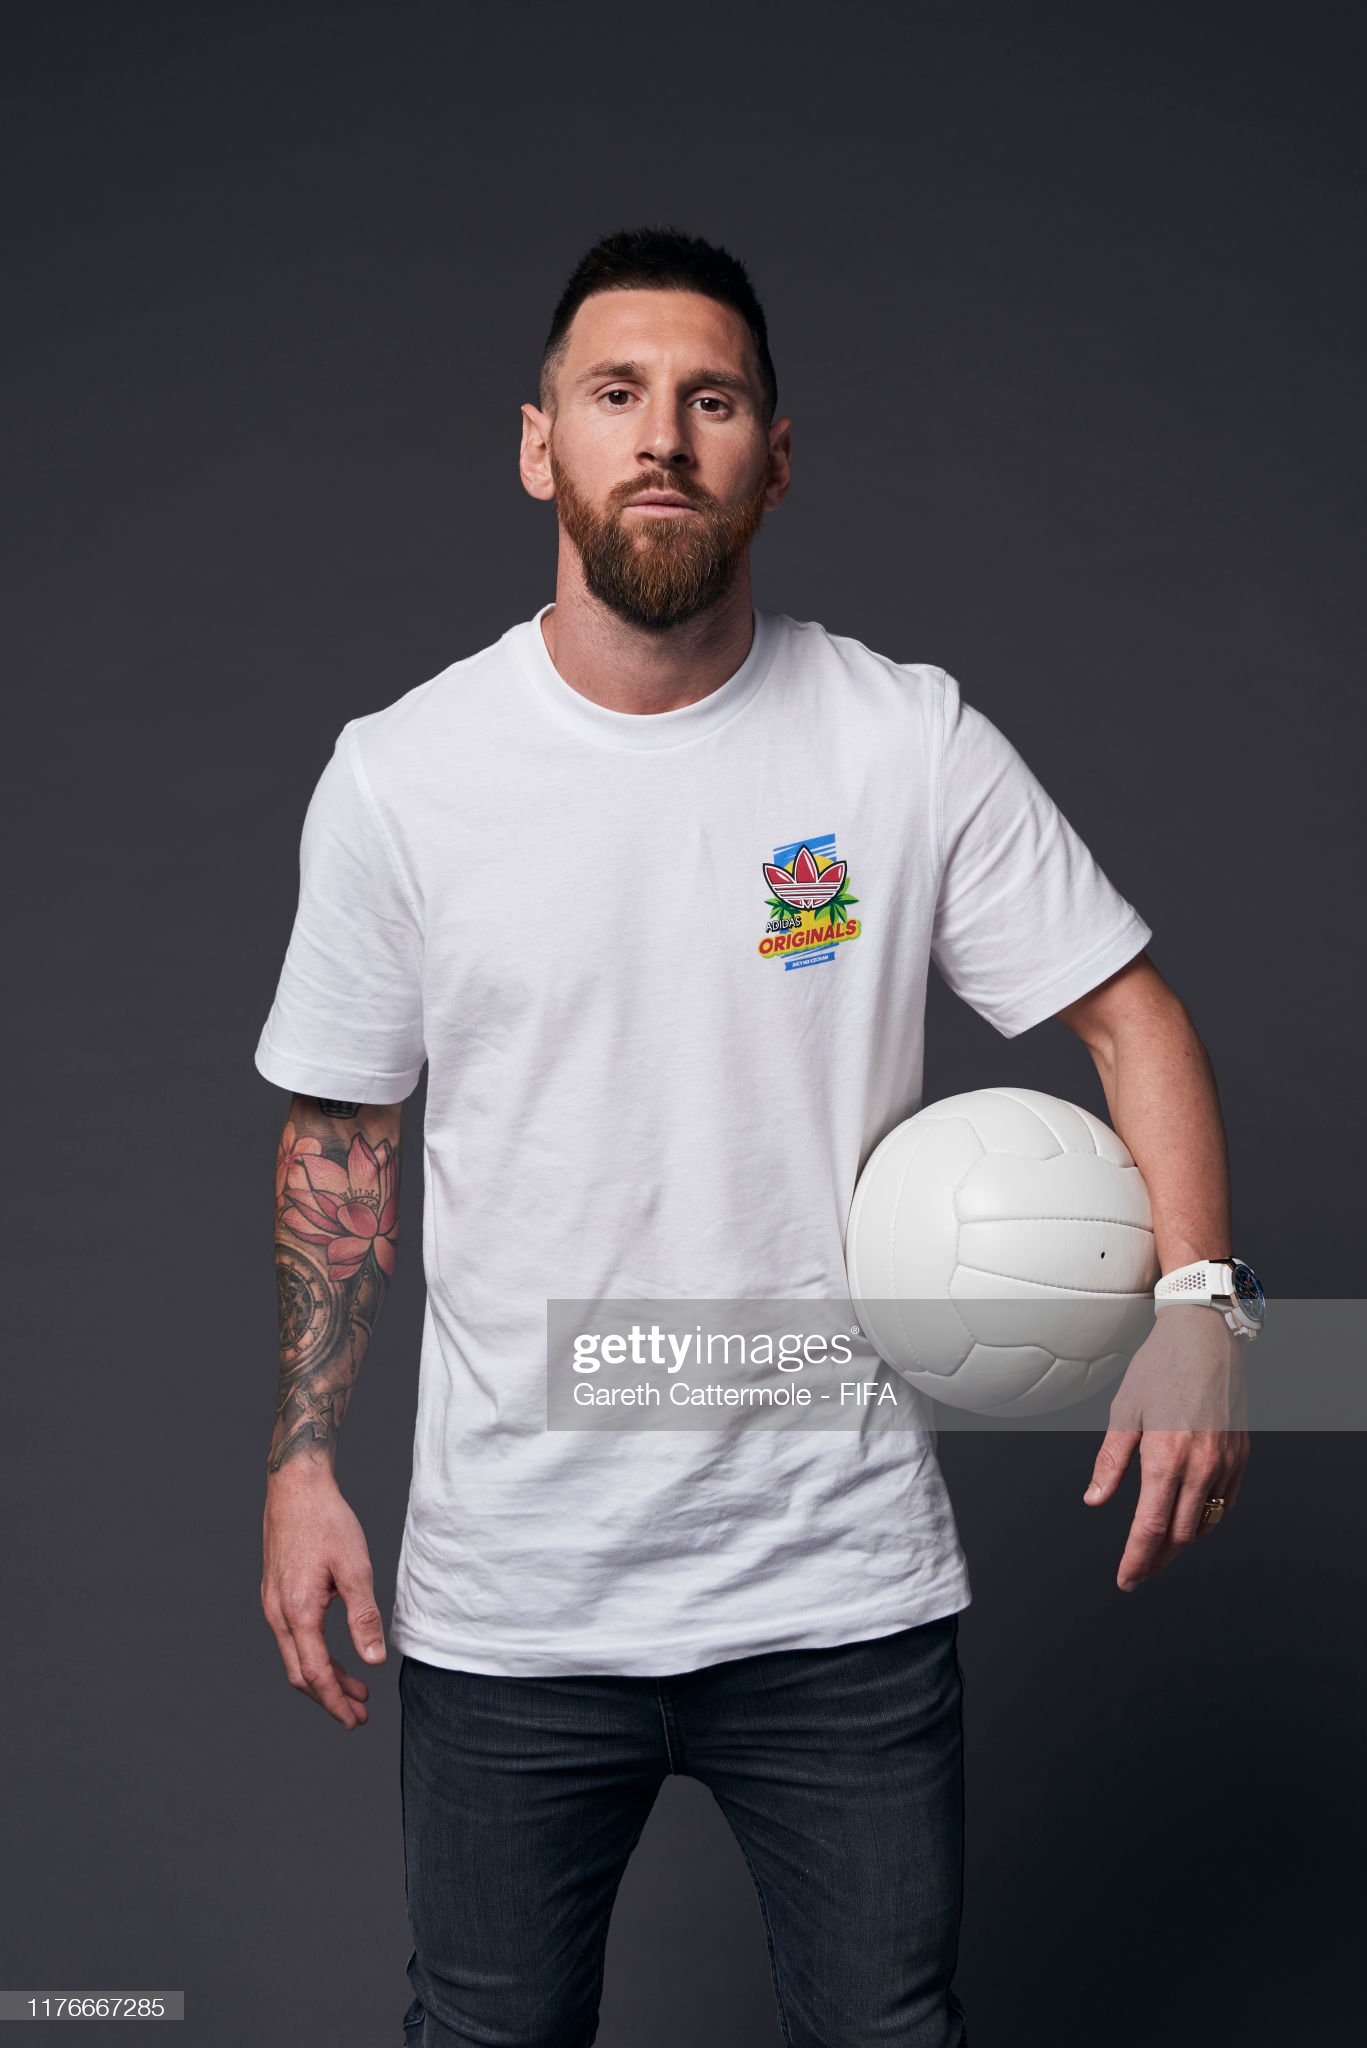 The Best FIFA Football Awards 2019 The-best-fifa-mens-player-award-finalist-lionel-messi-of-barcelona-picture-id1176667285?s=2048x2048